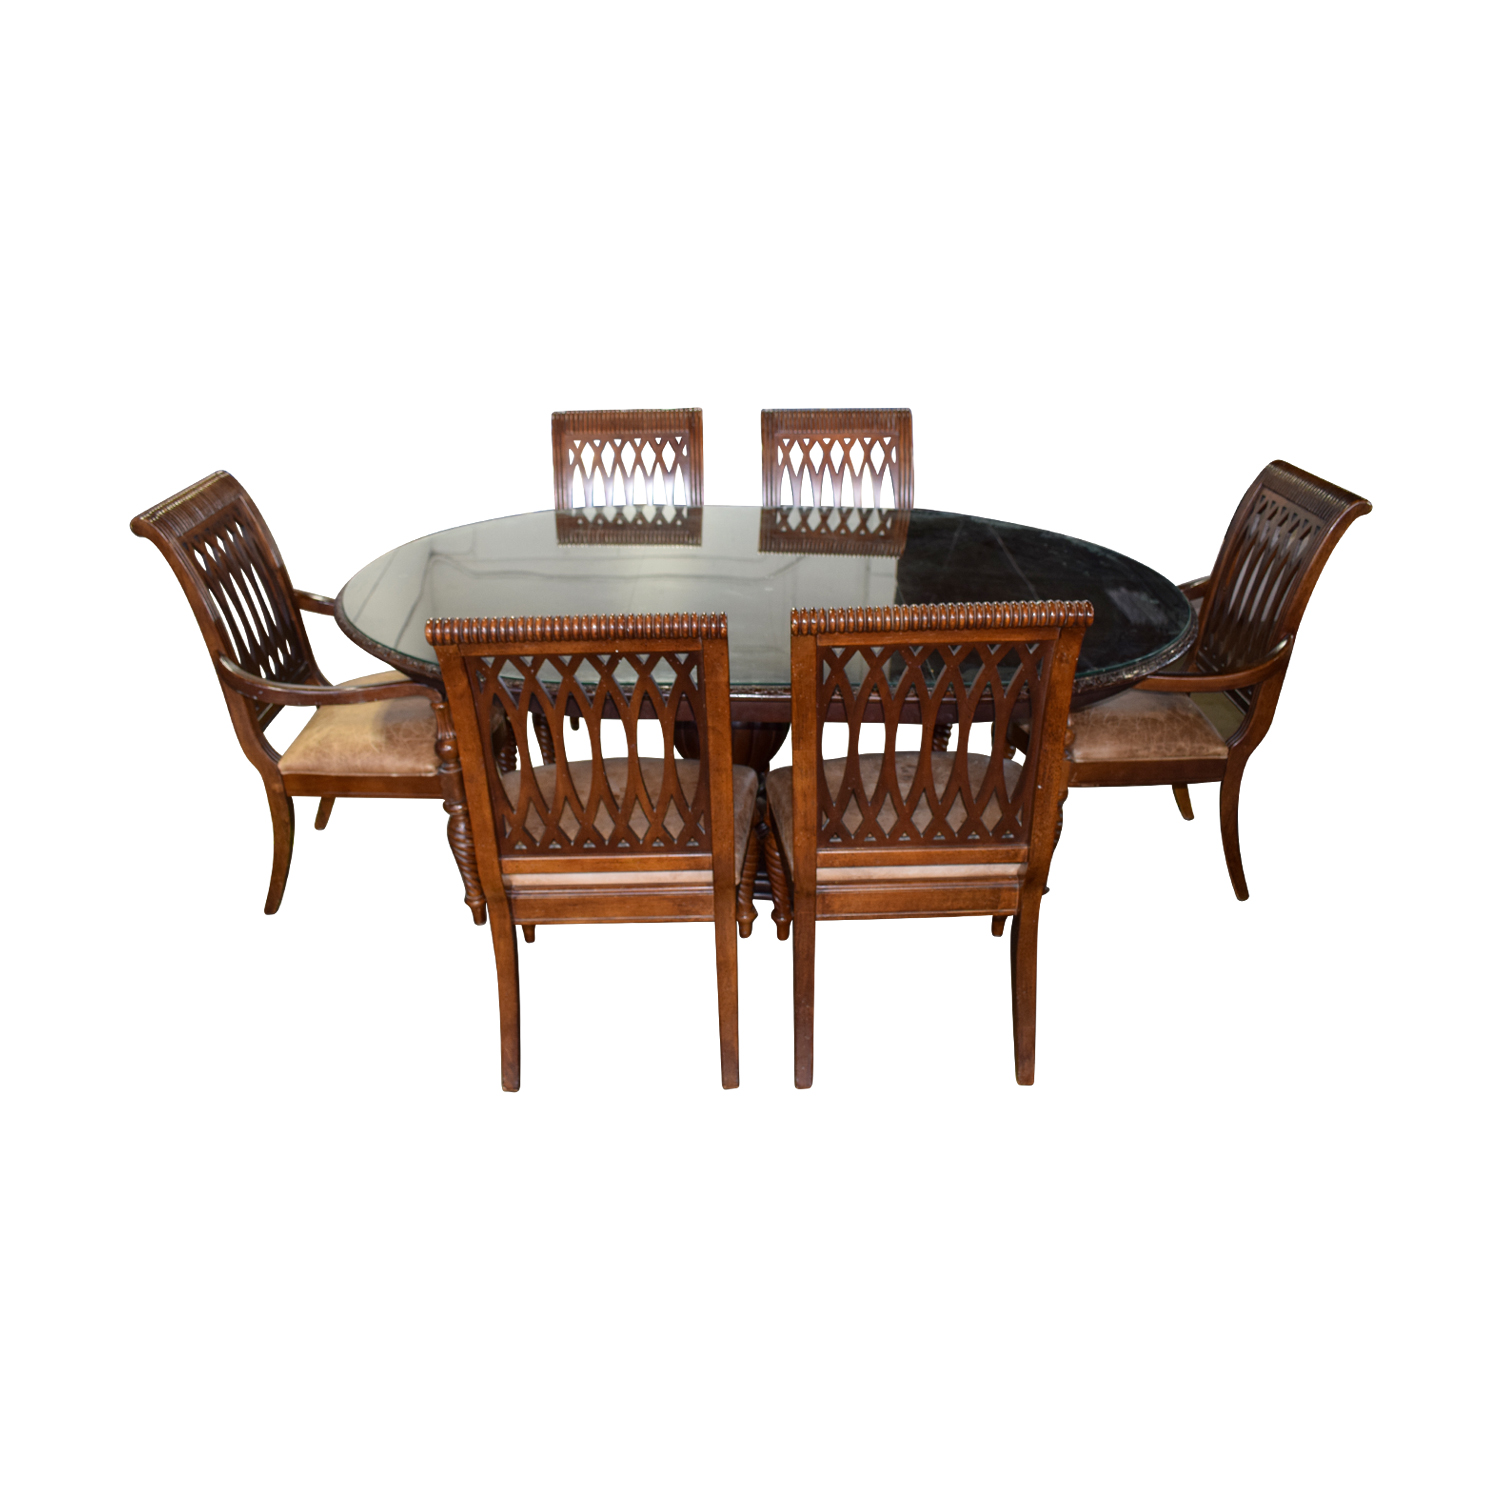 Bernhardt Bernhardt Embassy Row Cherry Carved Wood Dining Set used